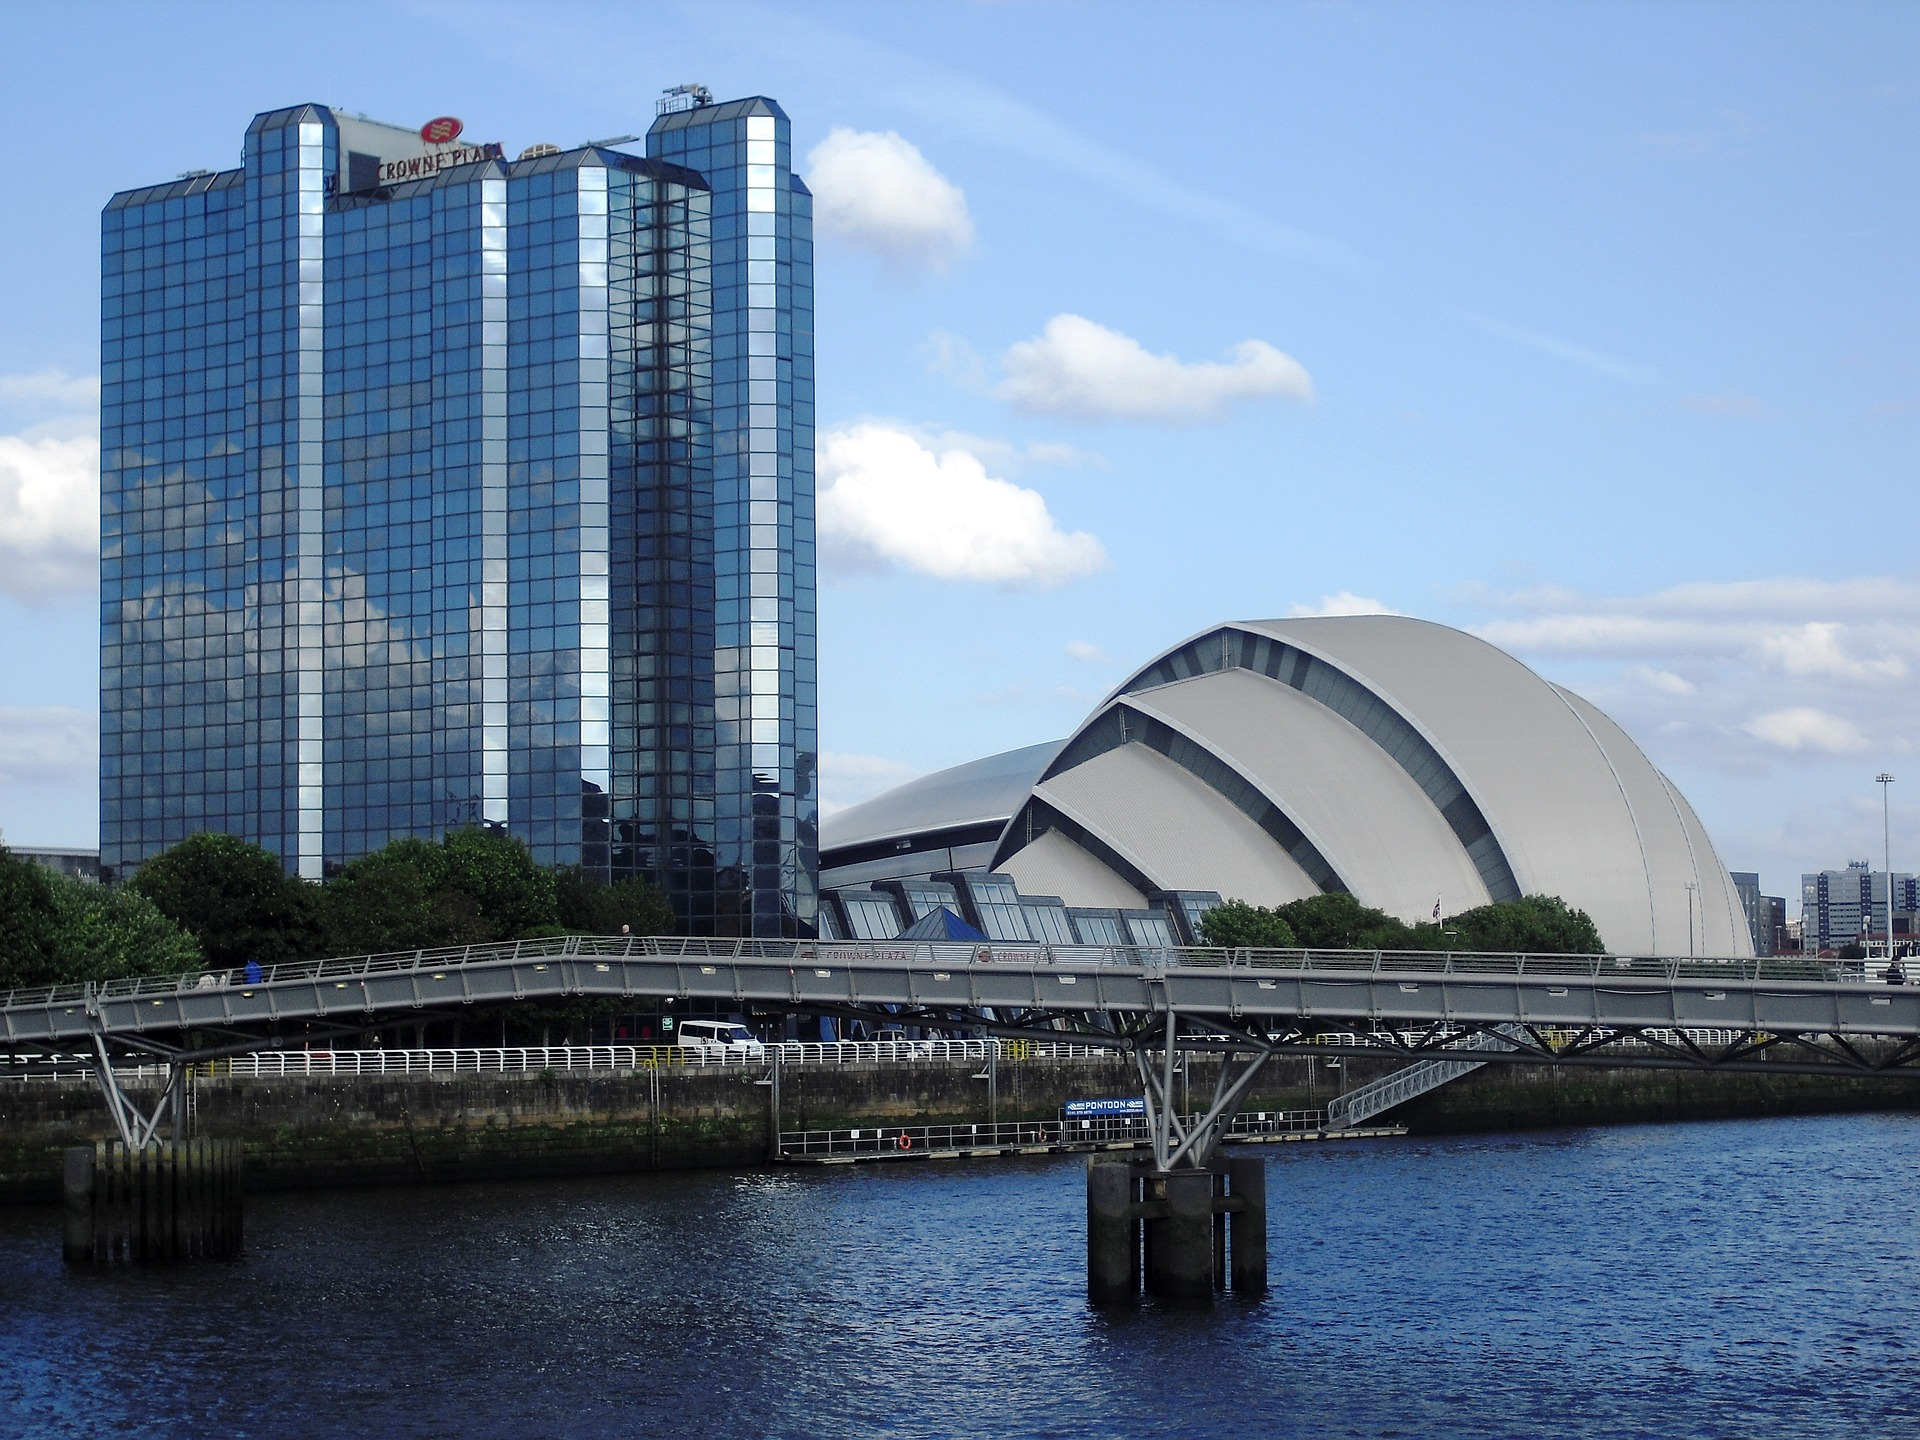 The Best Places To Locate Your Business In Glasgow